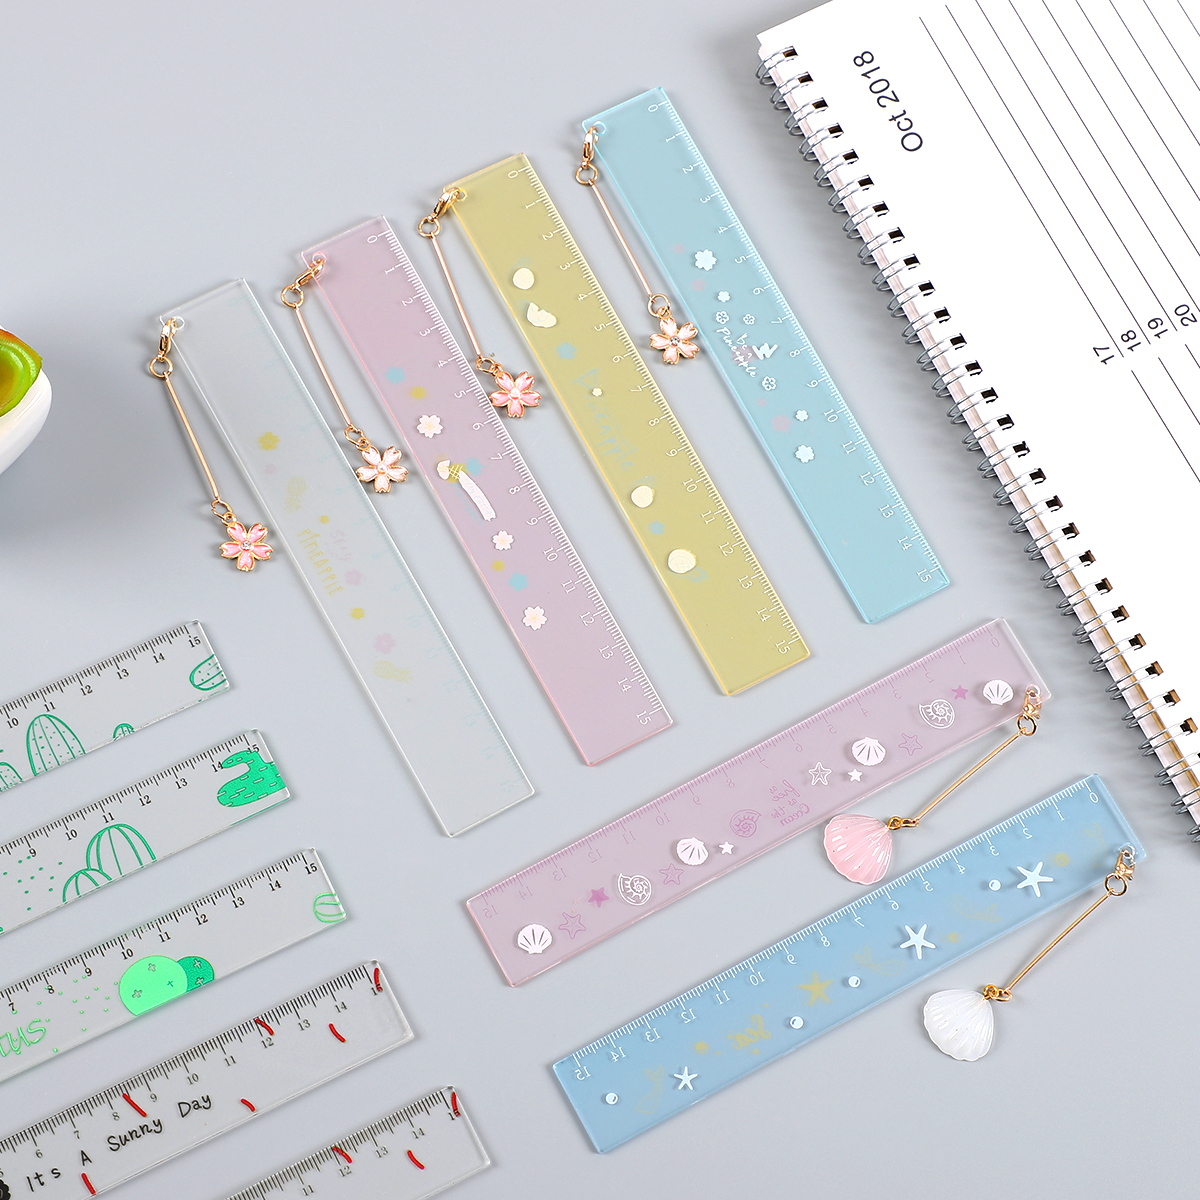 JIANWU 1pcs Simple Cute Style 15cm Transparent Acrylic Hanging Ruler Simple Ruler Square Ruler Kawaii Bookmark Ruler